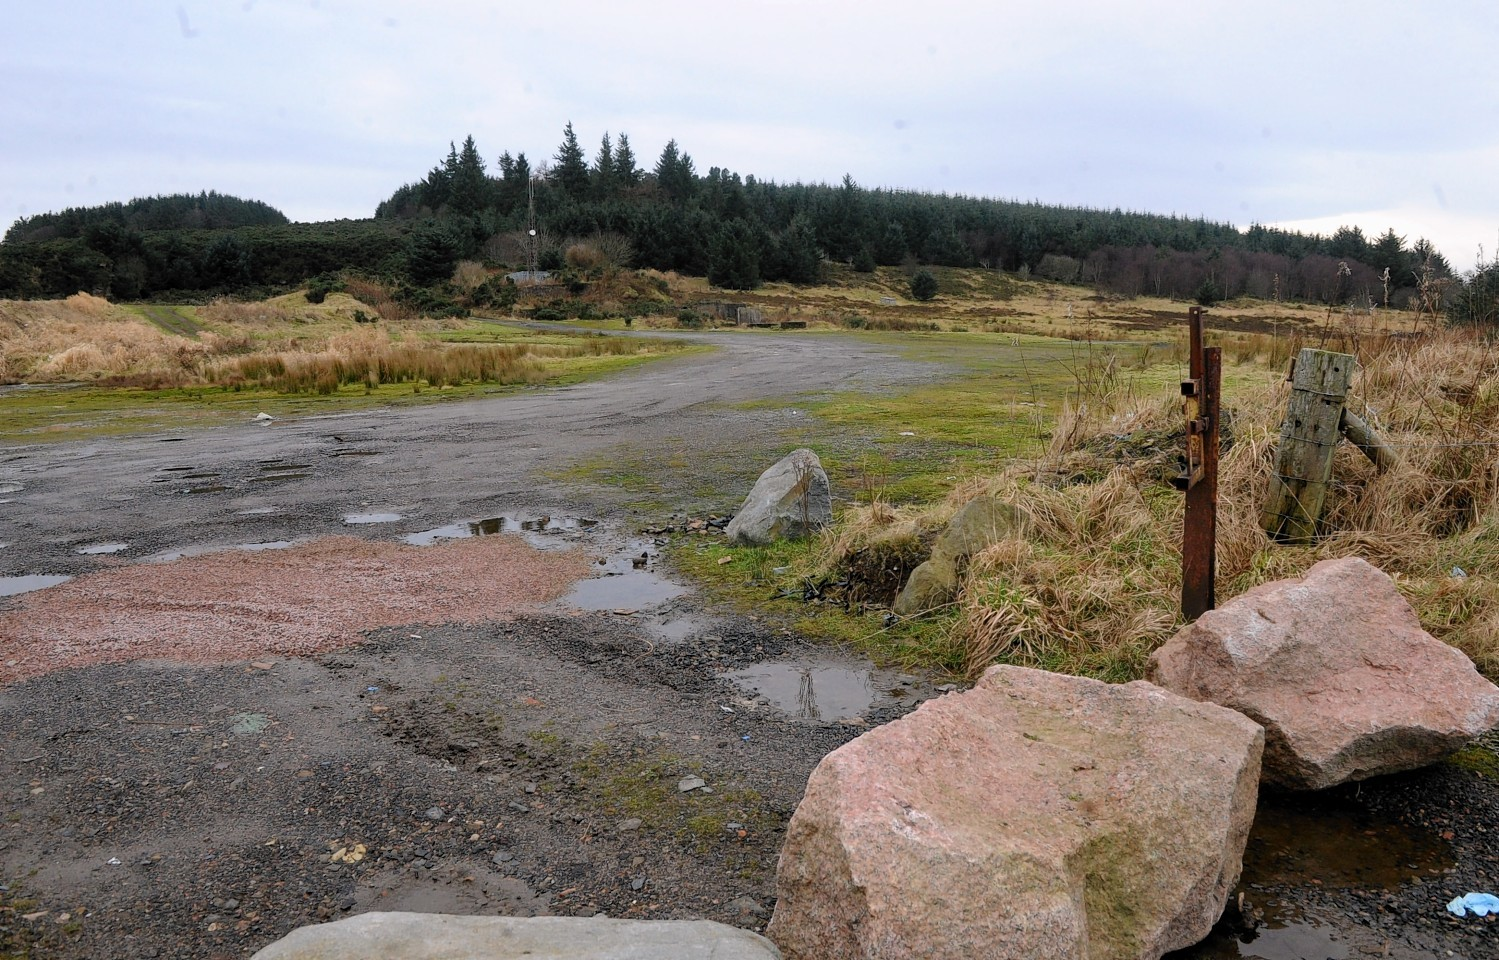 The traveller site would be the second in the region, joining Aikey Brae, pictured.